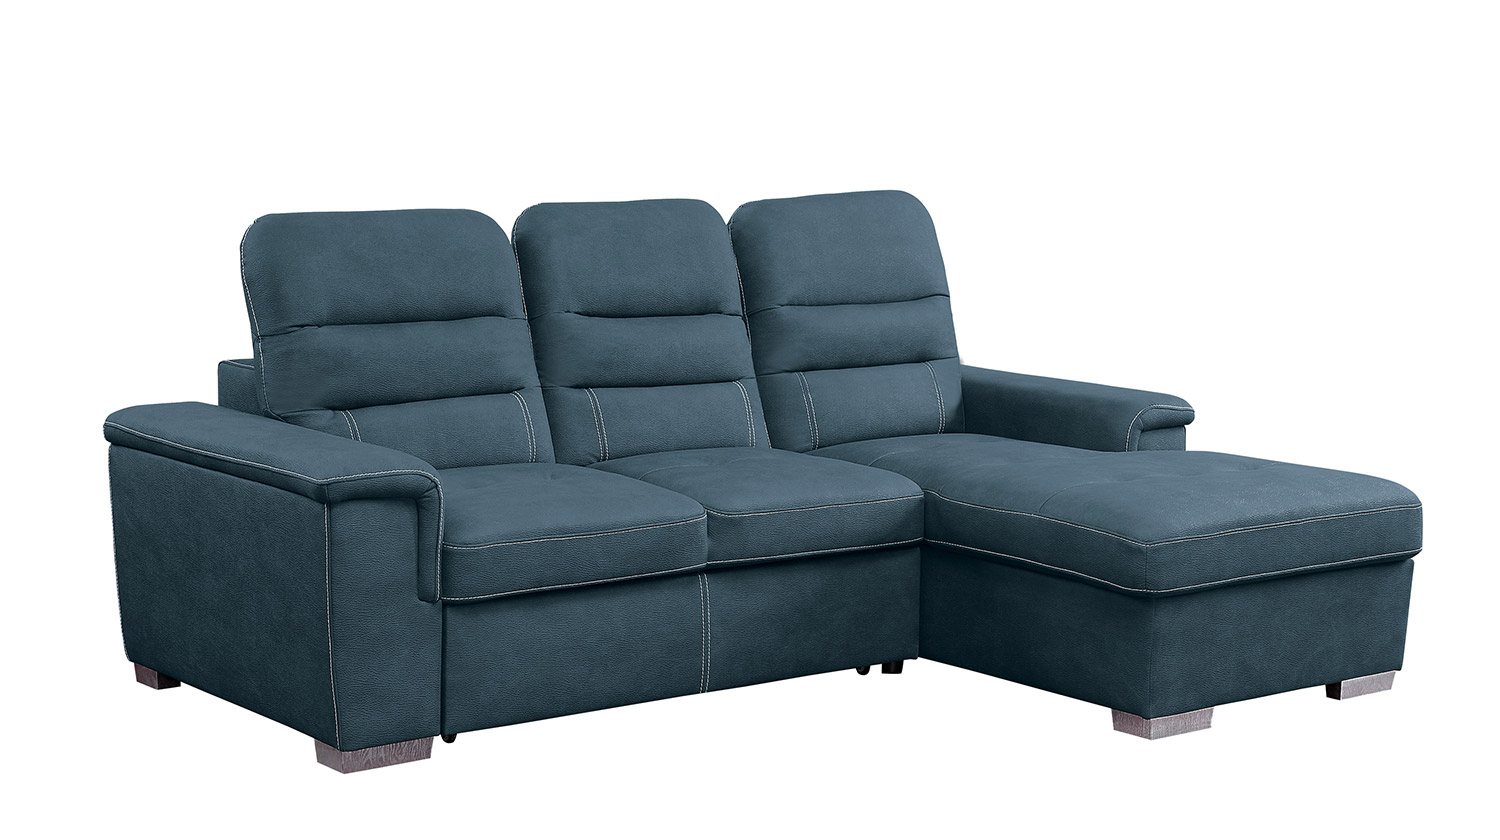 Homelegance Alfio Sectional with Pull-out Bed and Hidden Storage - Blue